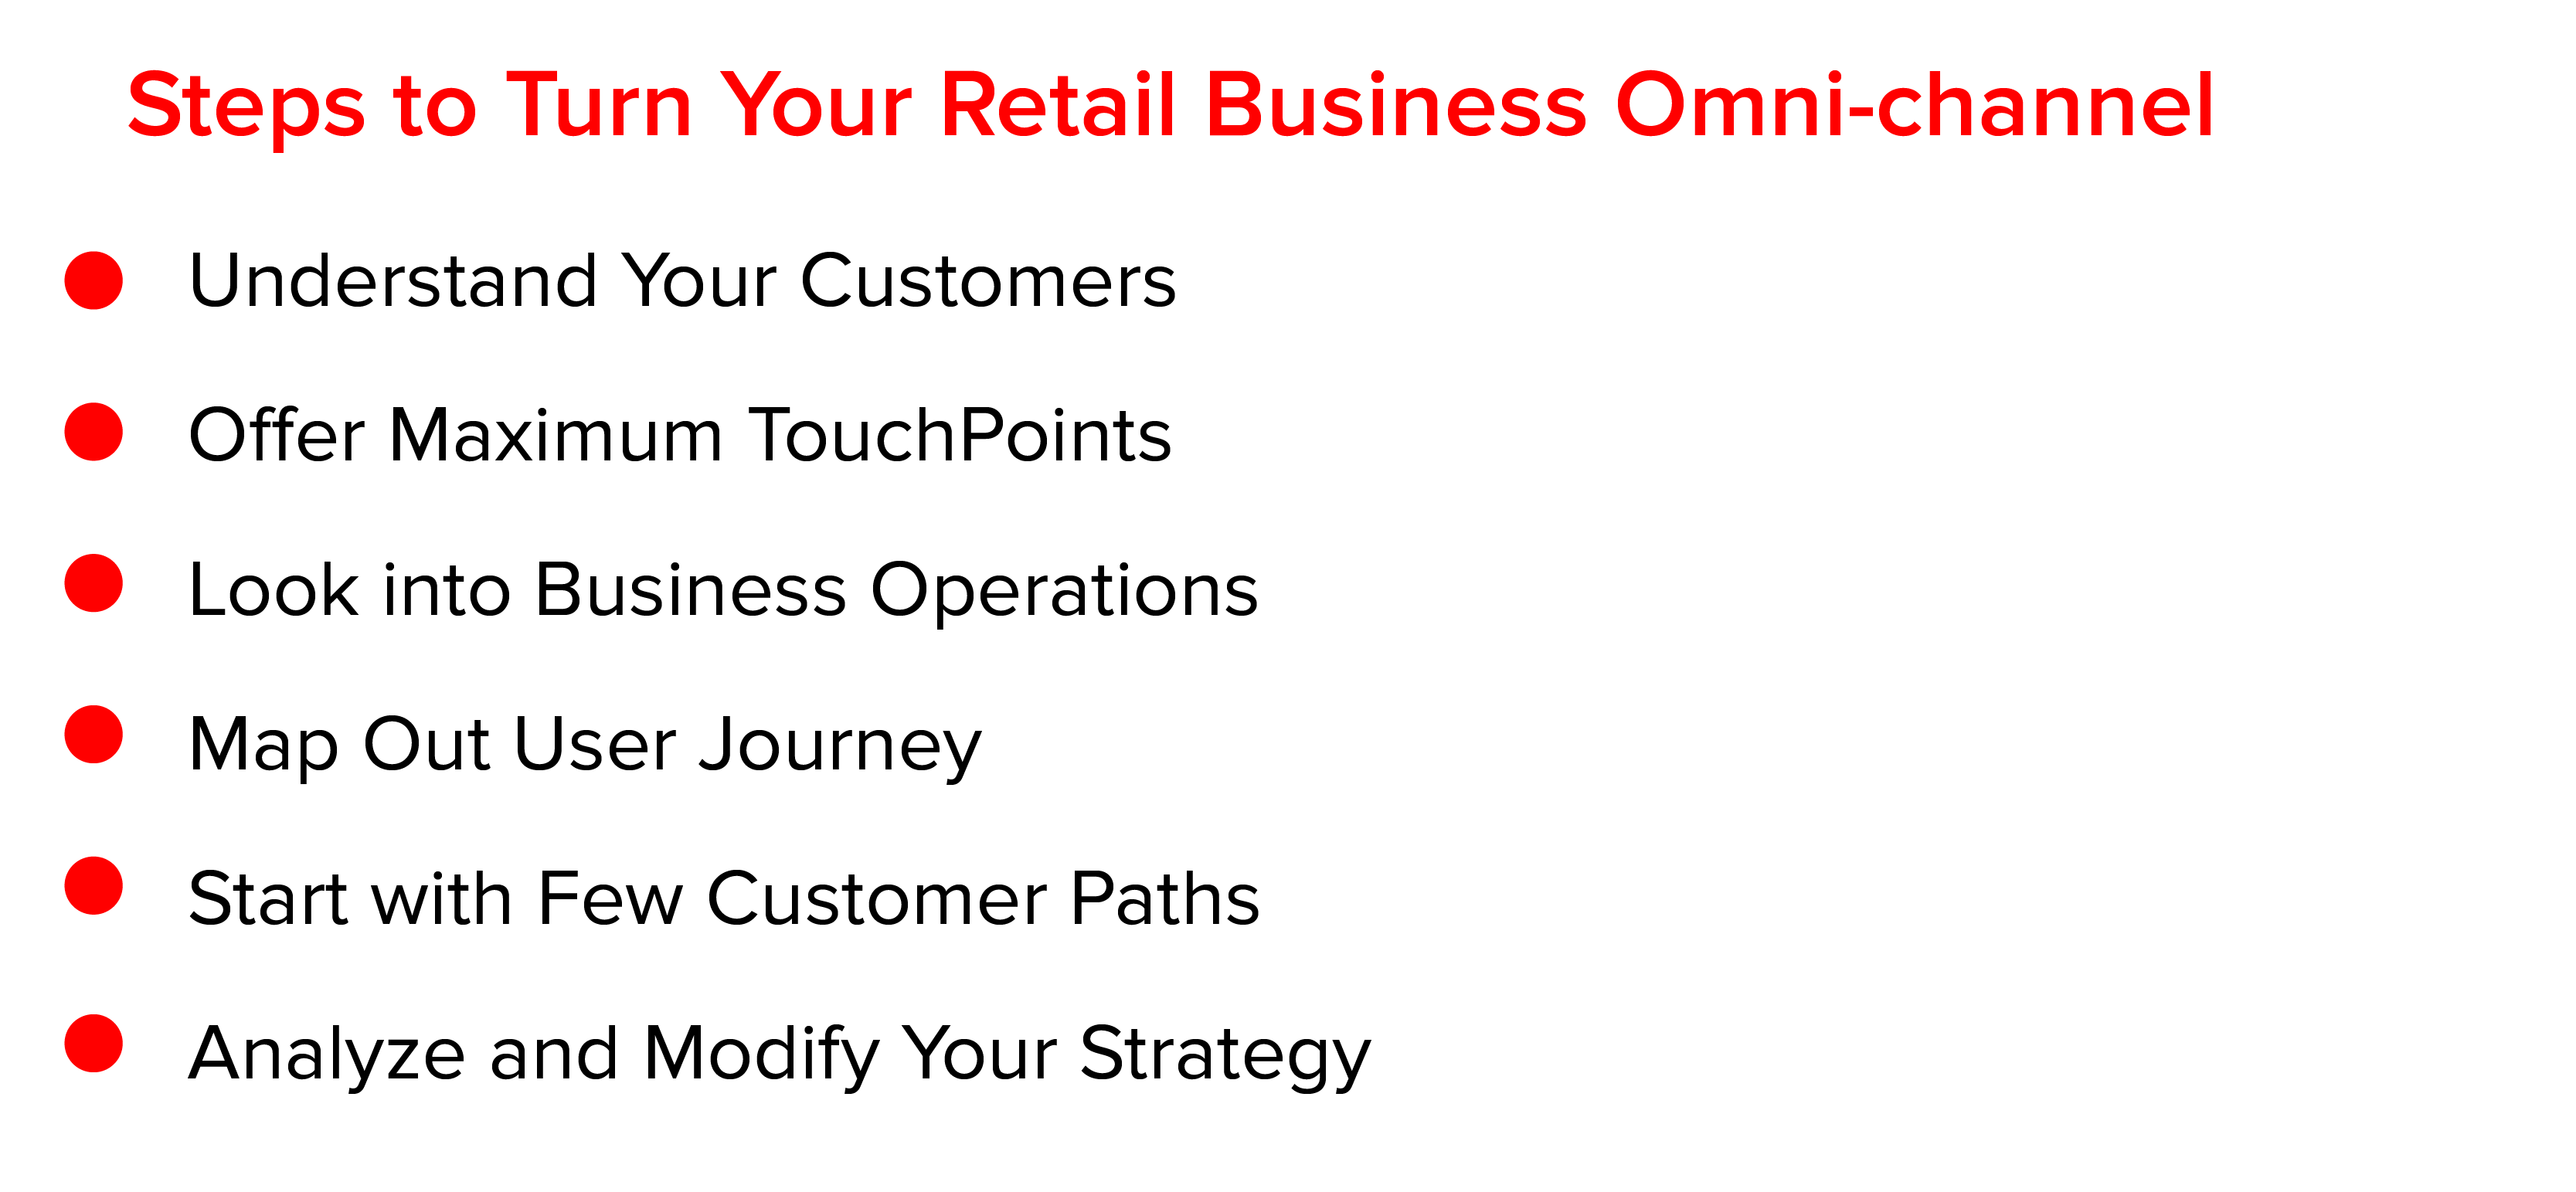 Steps to Turn Your Retail Business Omni-Channel